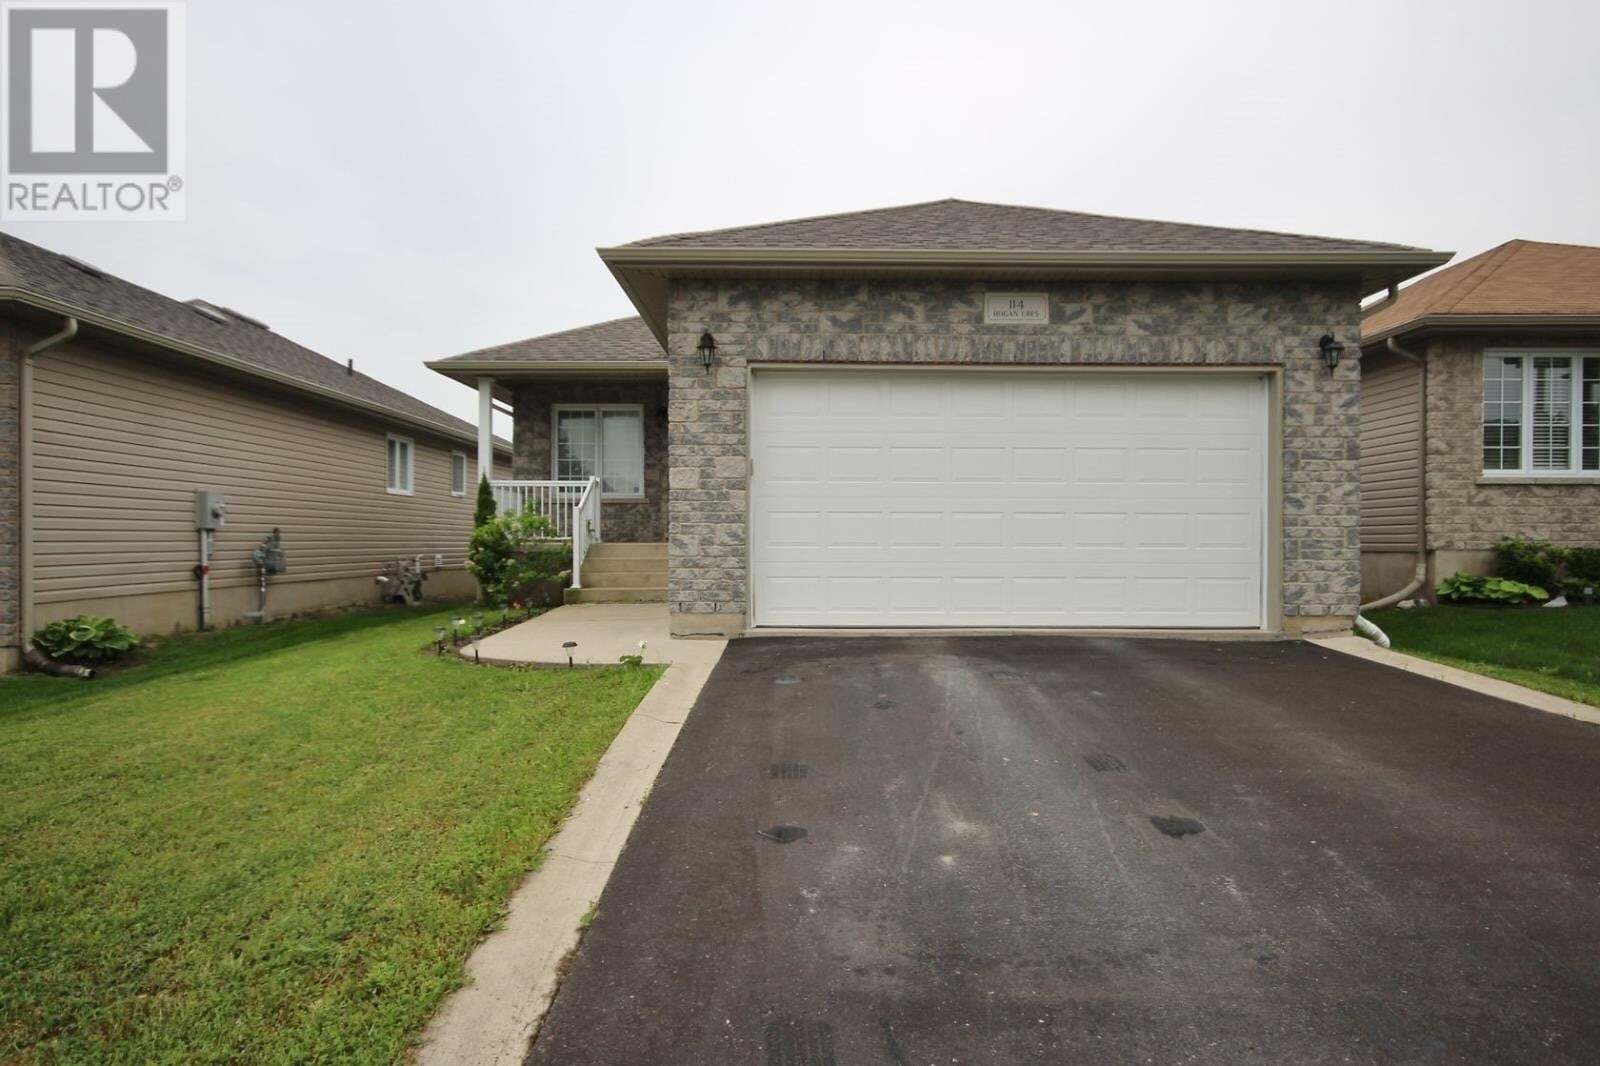 House for sale at 114 Hogan Cres Amherstview Ontario - MLS: K20002883